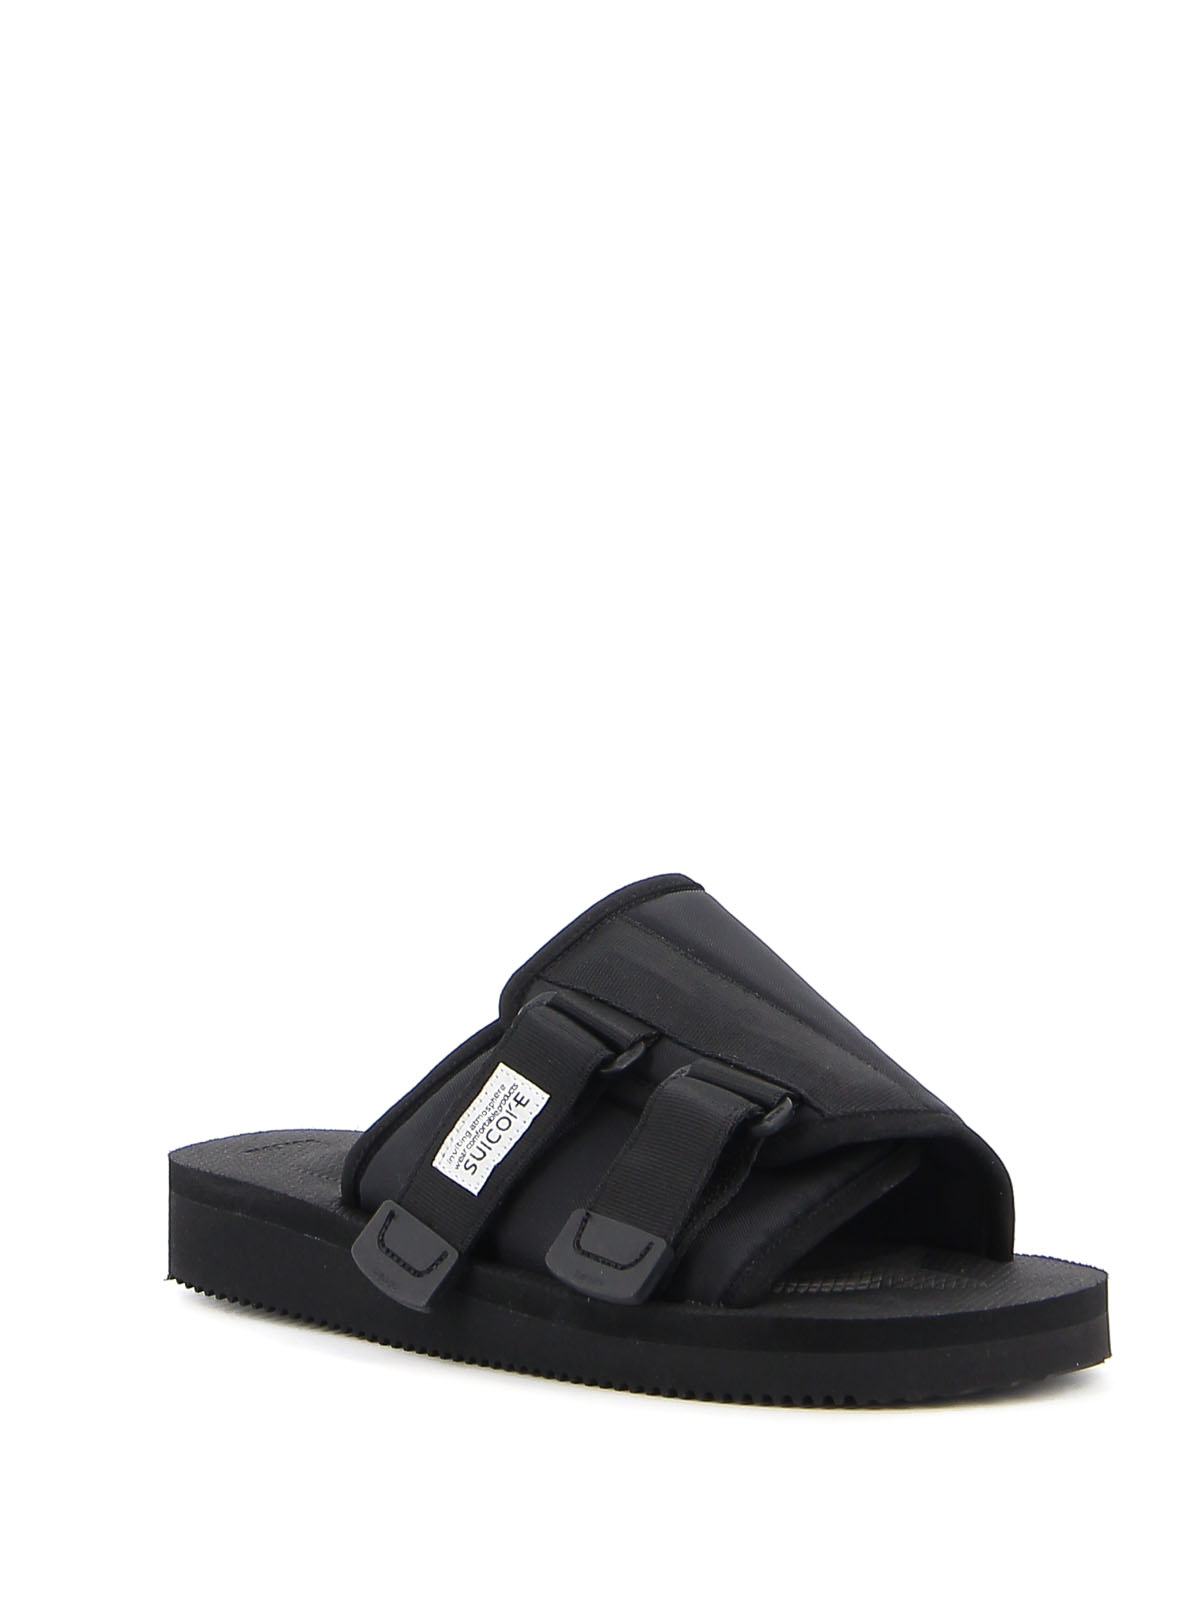 Picture of Suicoke | Kaw-Cab